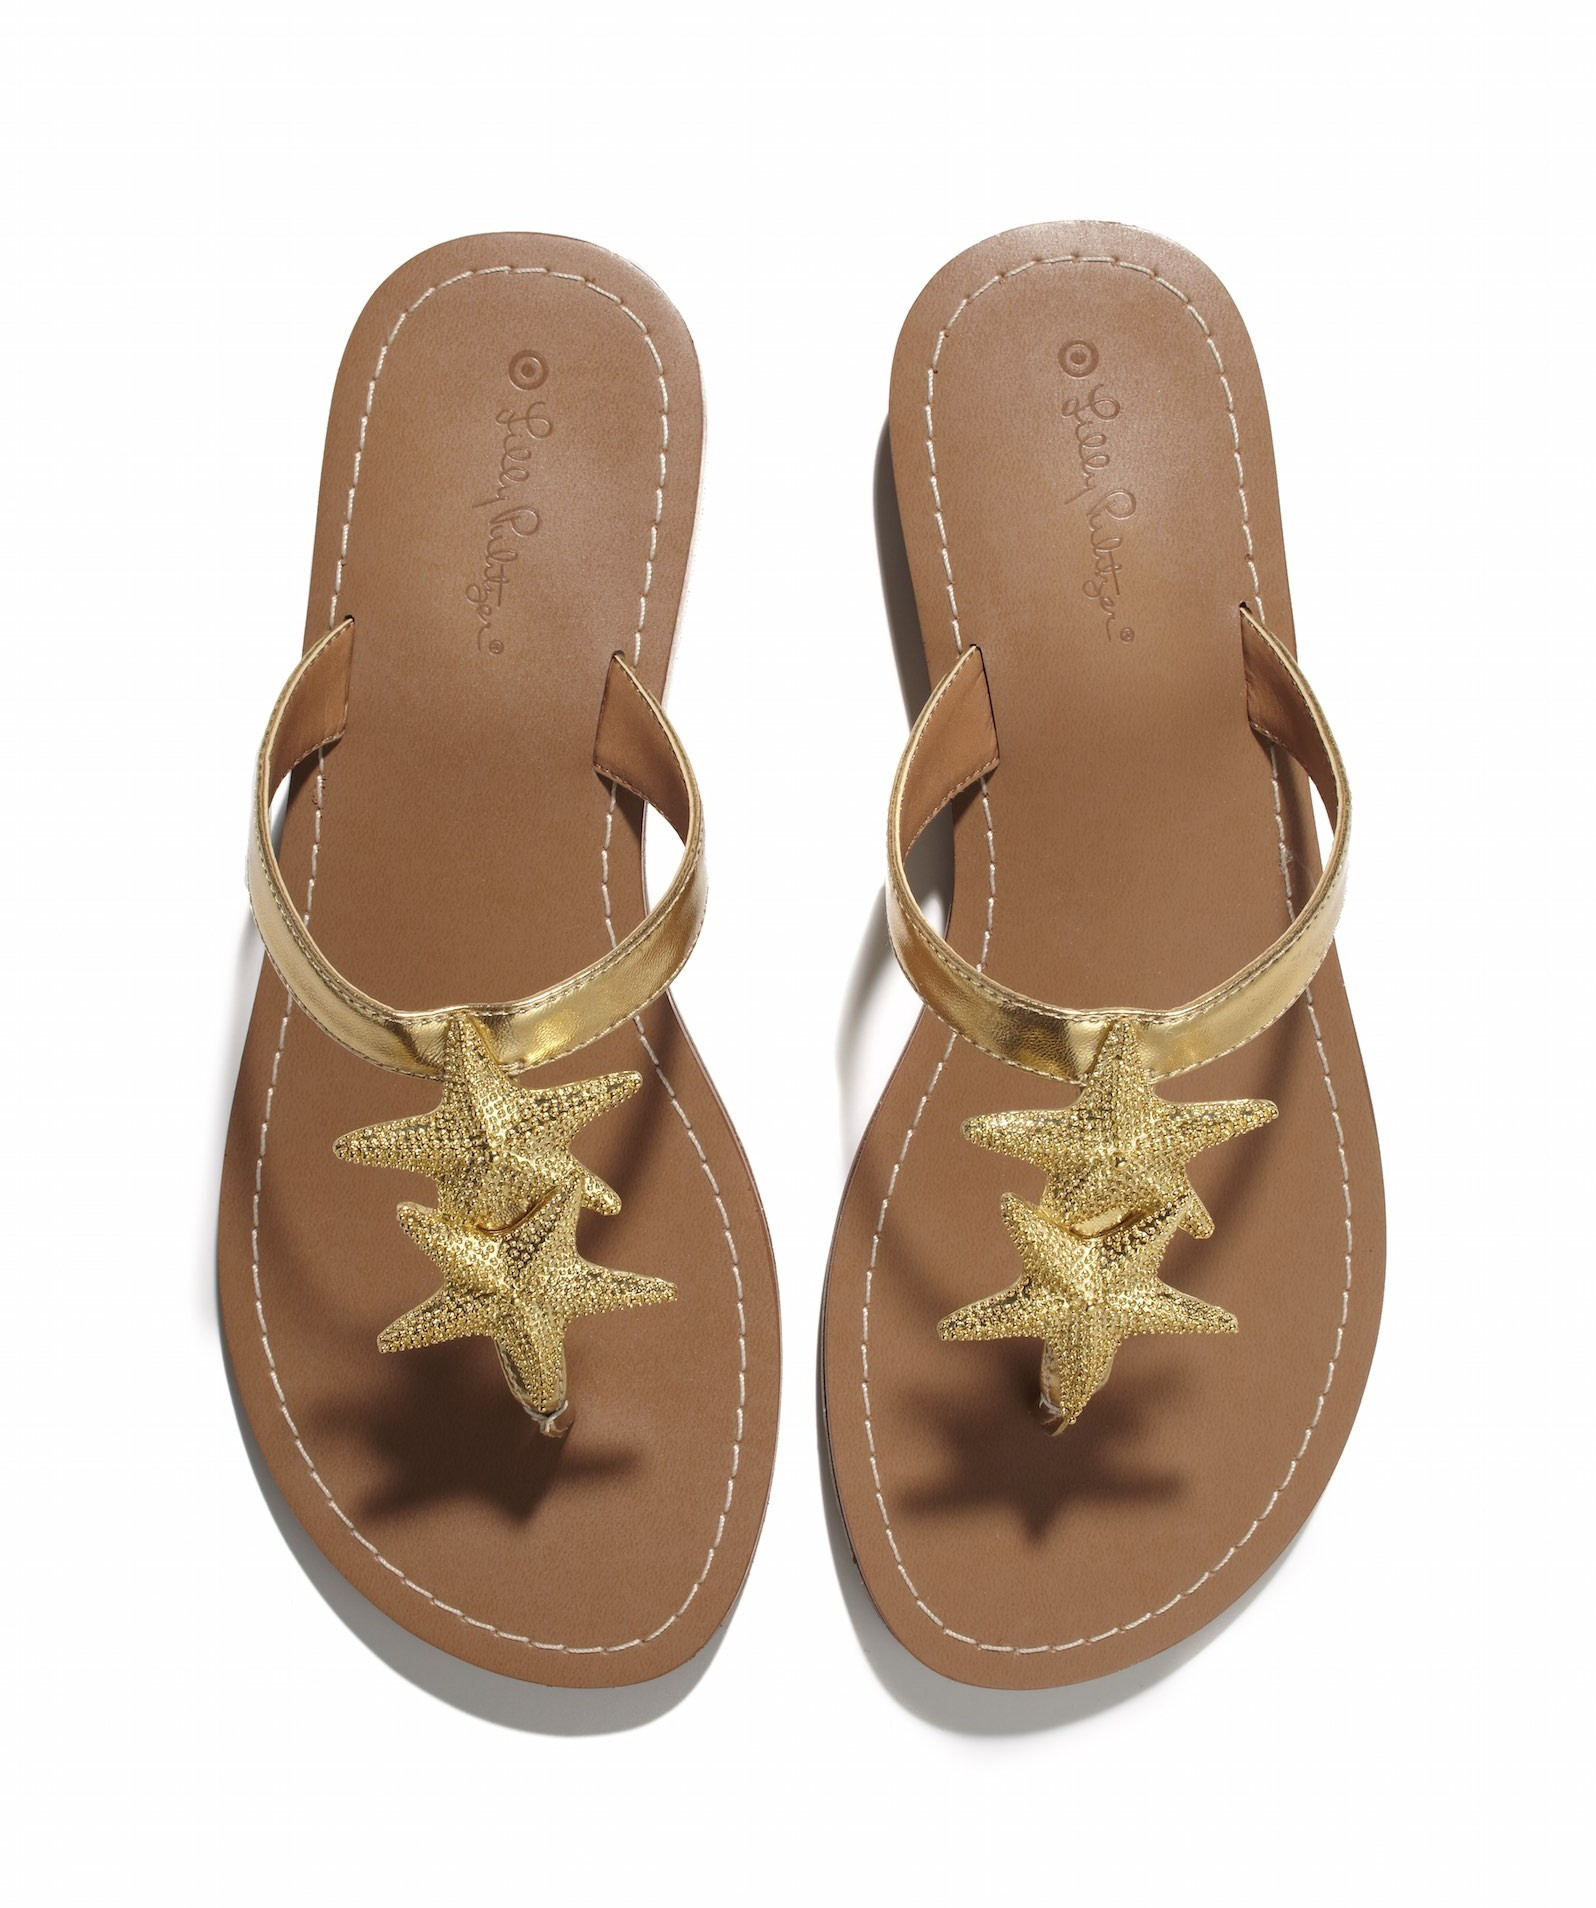 starfish-sandals-gold